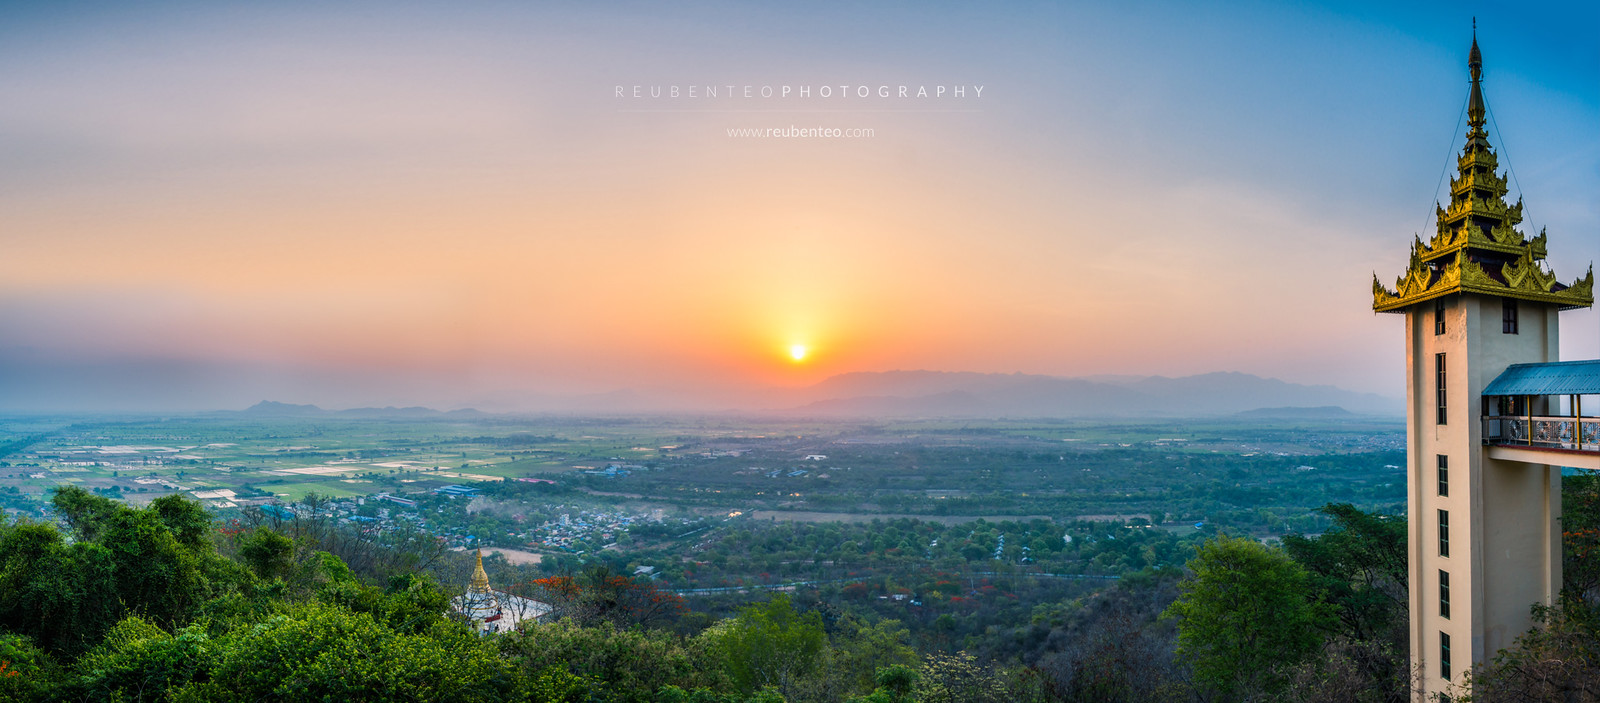 Sunrise at Mandalay Hill